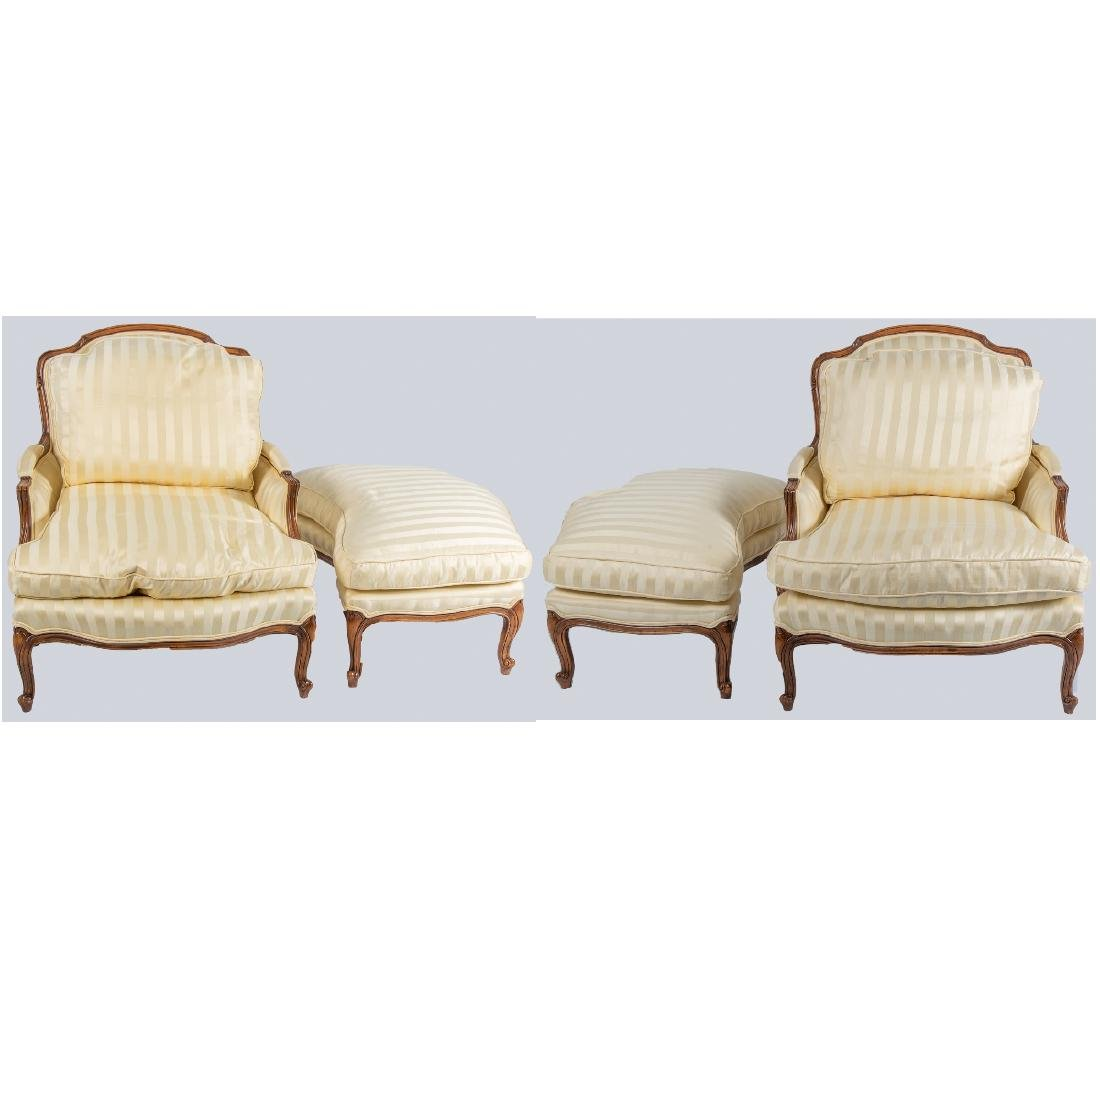 A Pair of Meyer, Guntther and Martini Louis XV Style